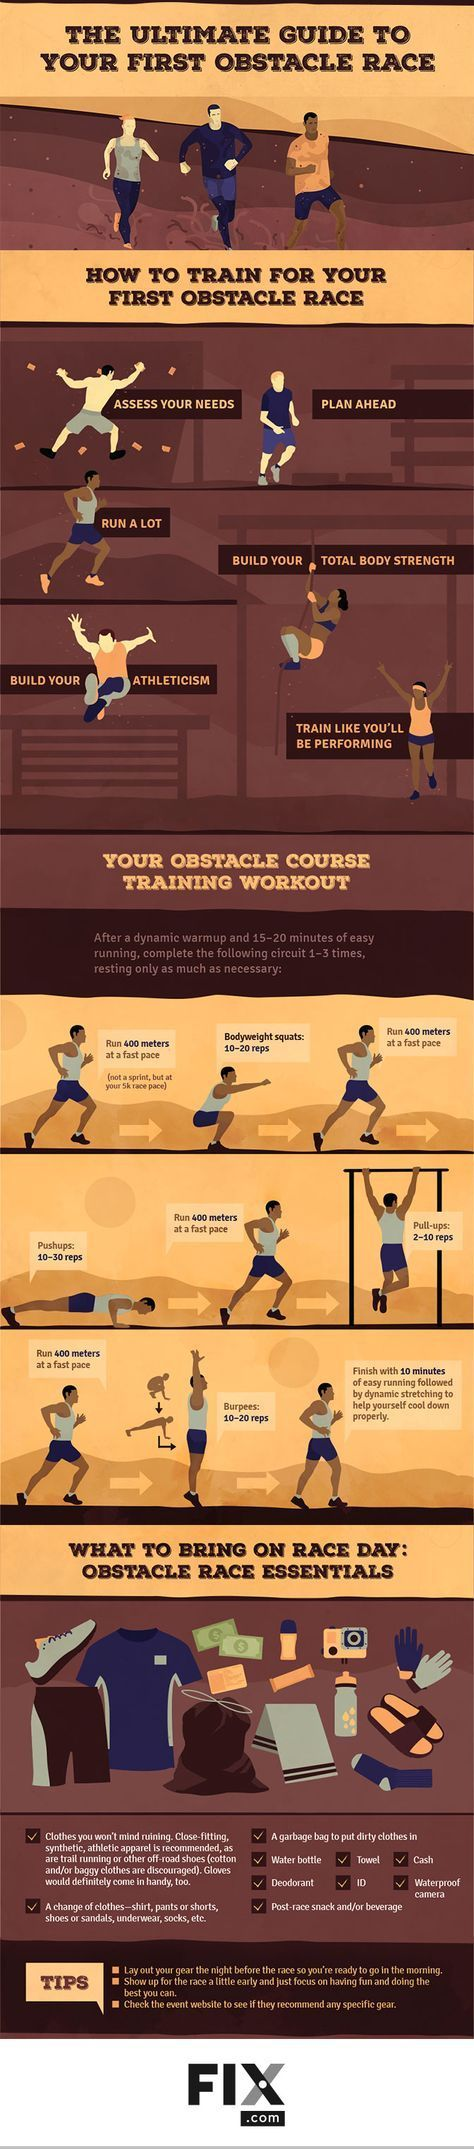 Training for your first obstacle race can seem overwhelming, but fear not! Fitness expert Jason Fitzgerald has your ultimate guide to your first obstacle race! #running #obstaclerace #runningtraining